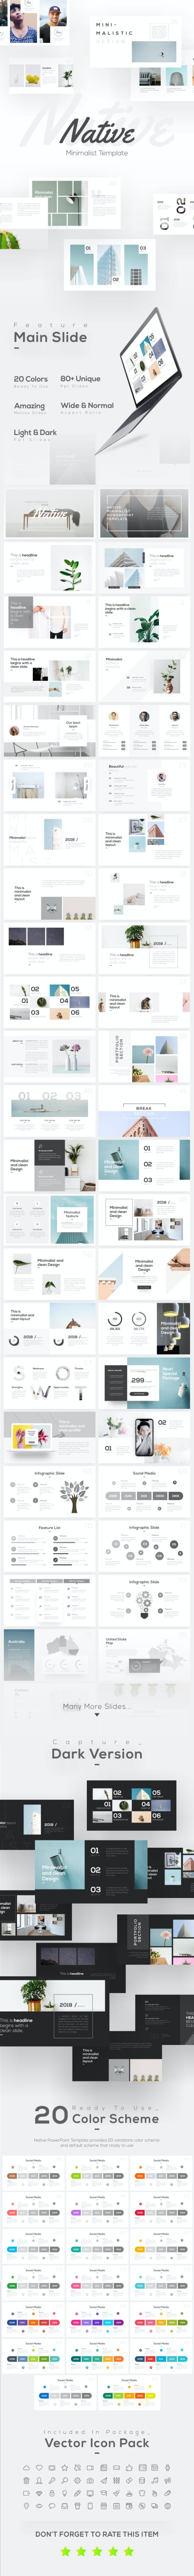 native minimalist powerpoint template by brandearth graphicriver